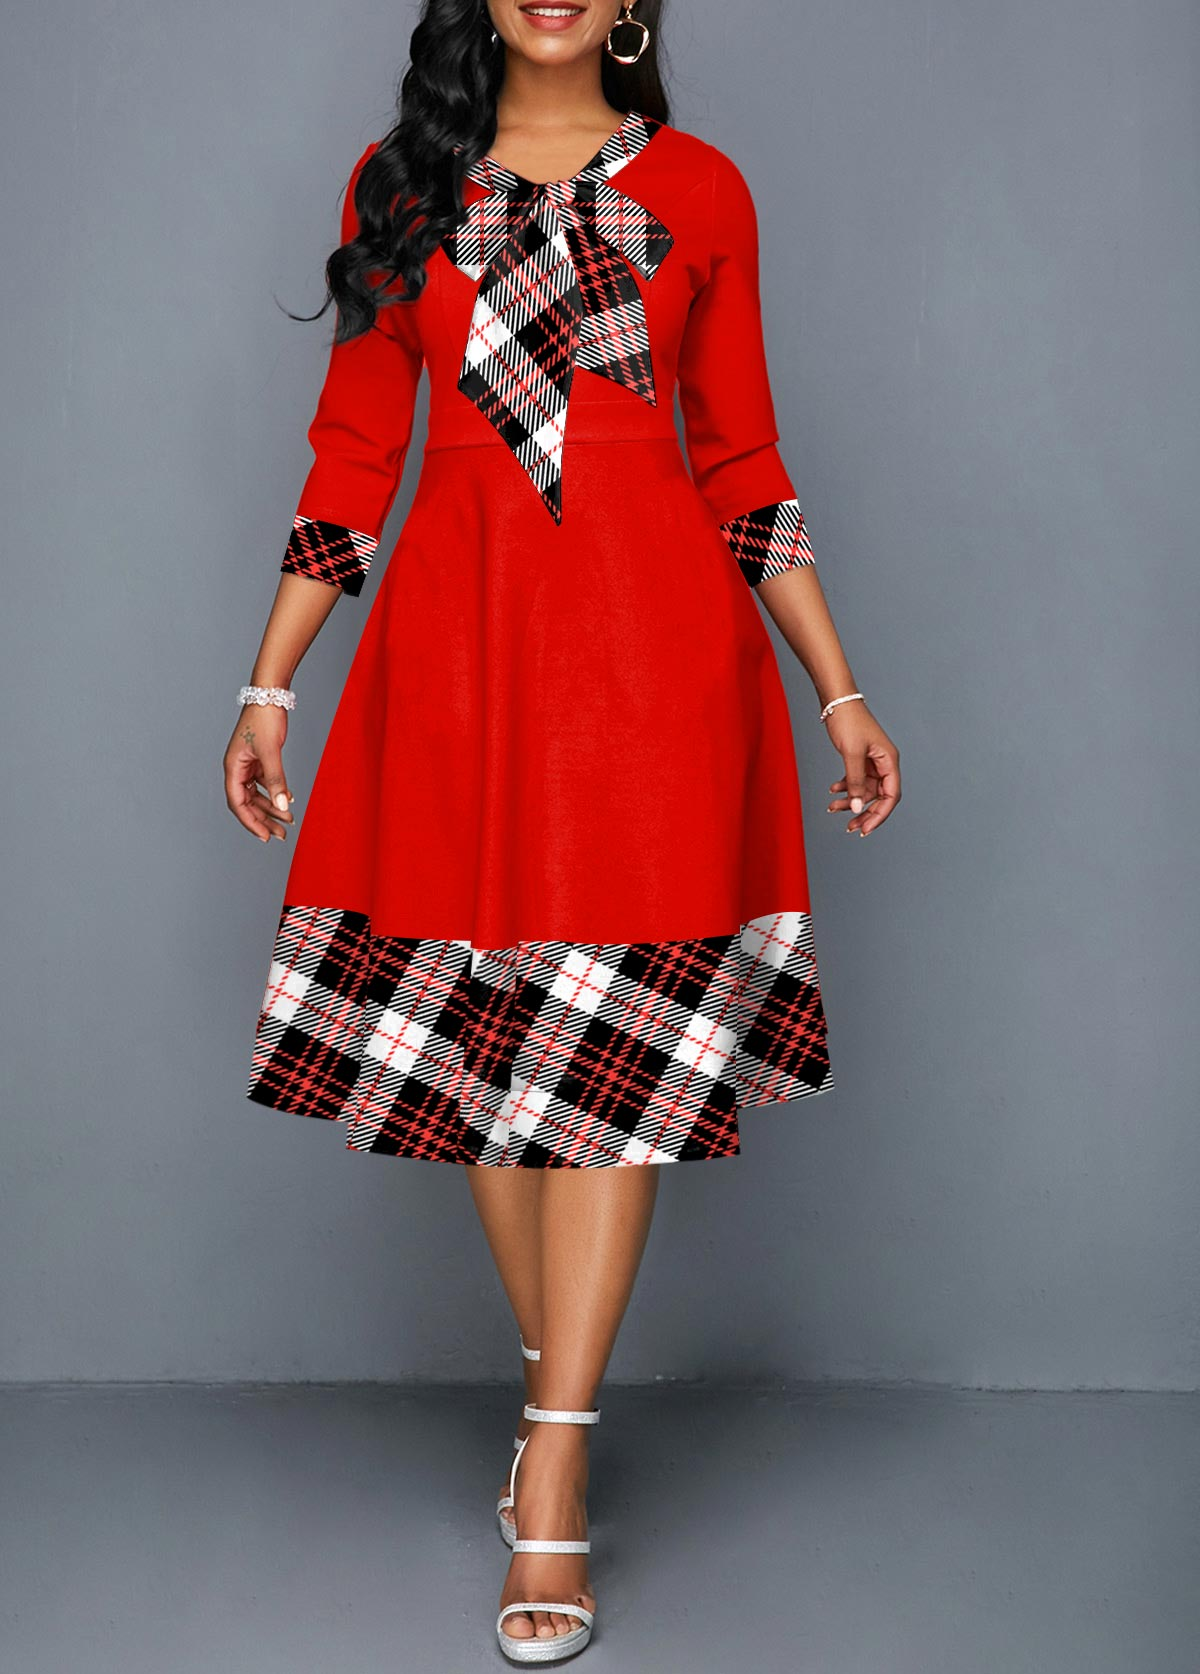 ROTITA Bowknot Side Pocket 3/4 Sleeve Plaid Dress